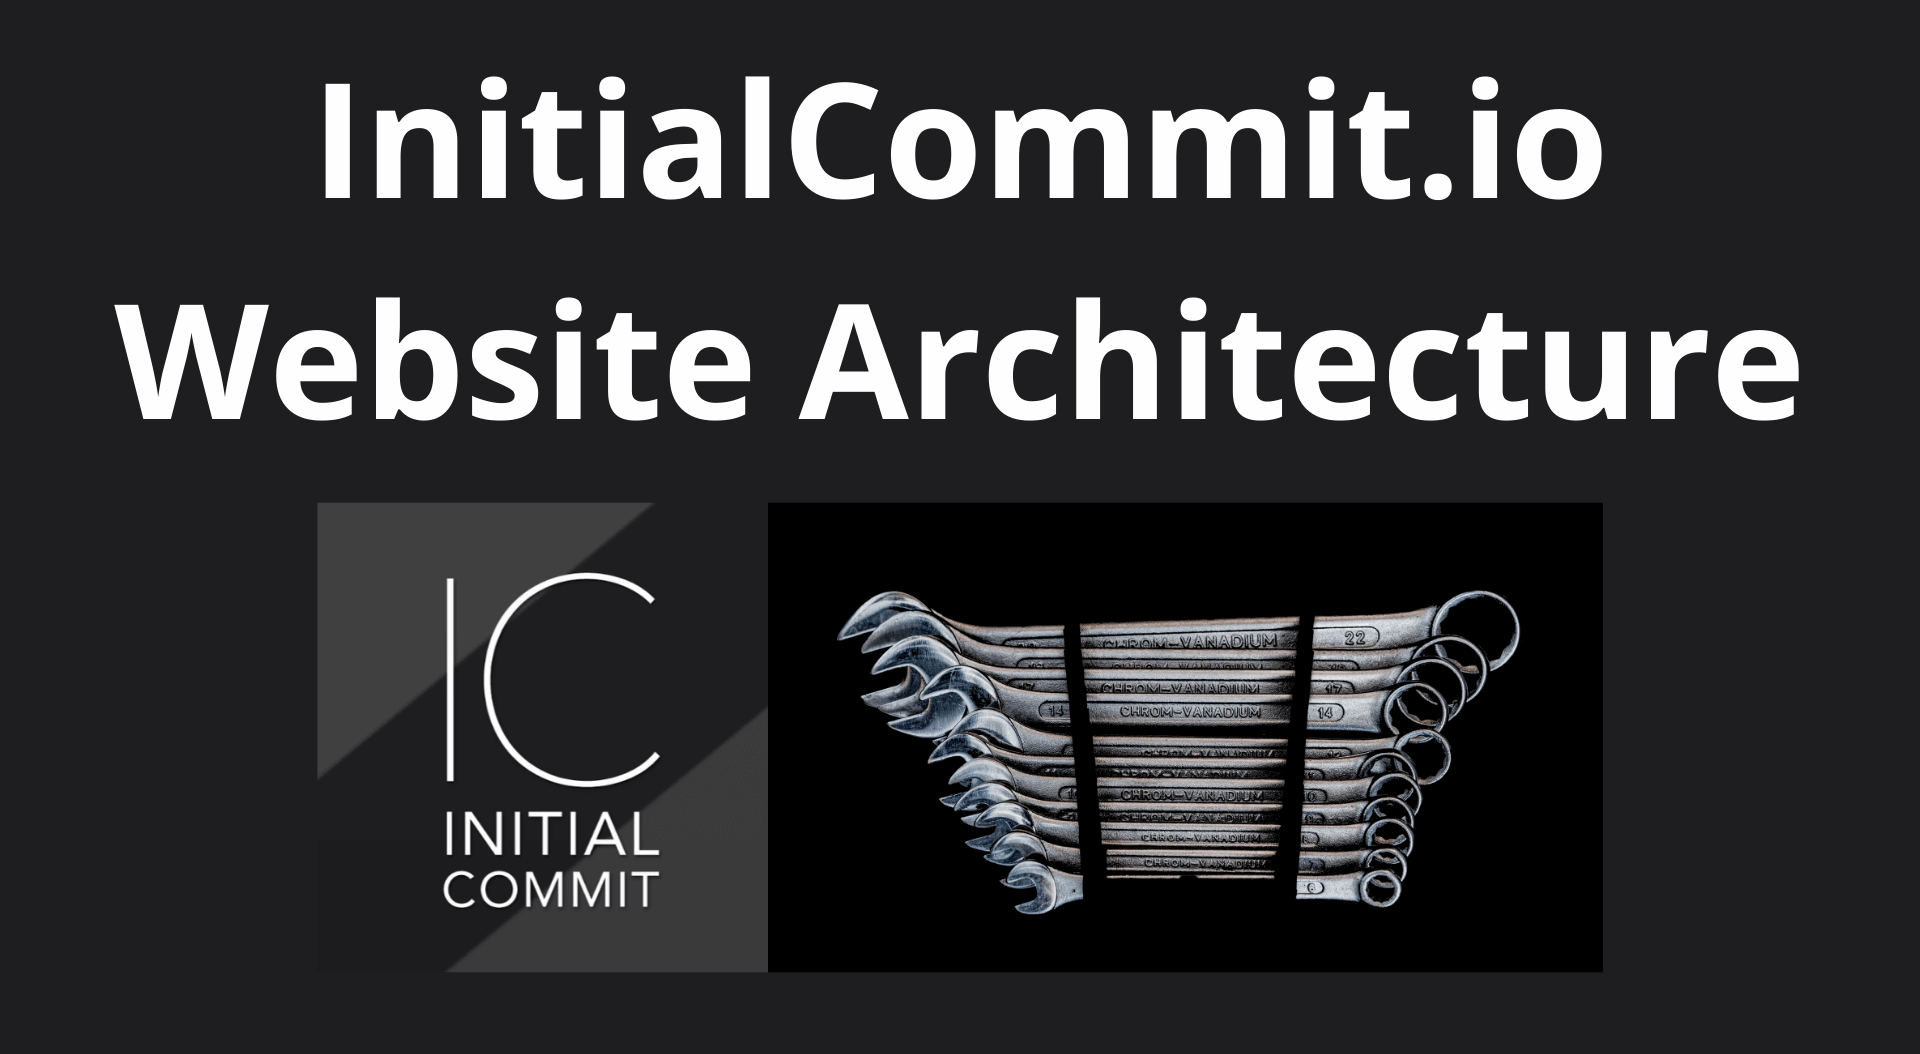 Image of InitialCommit.io Website Architecture Overview